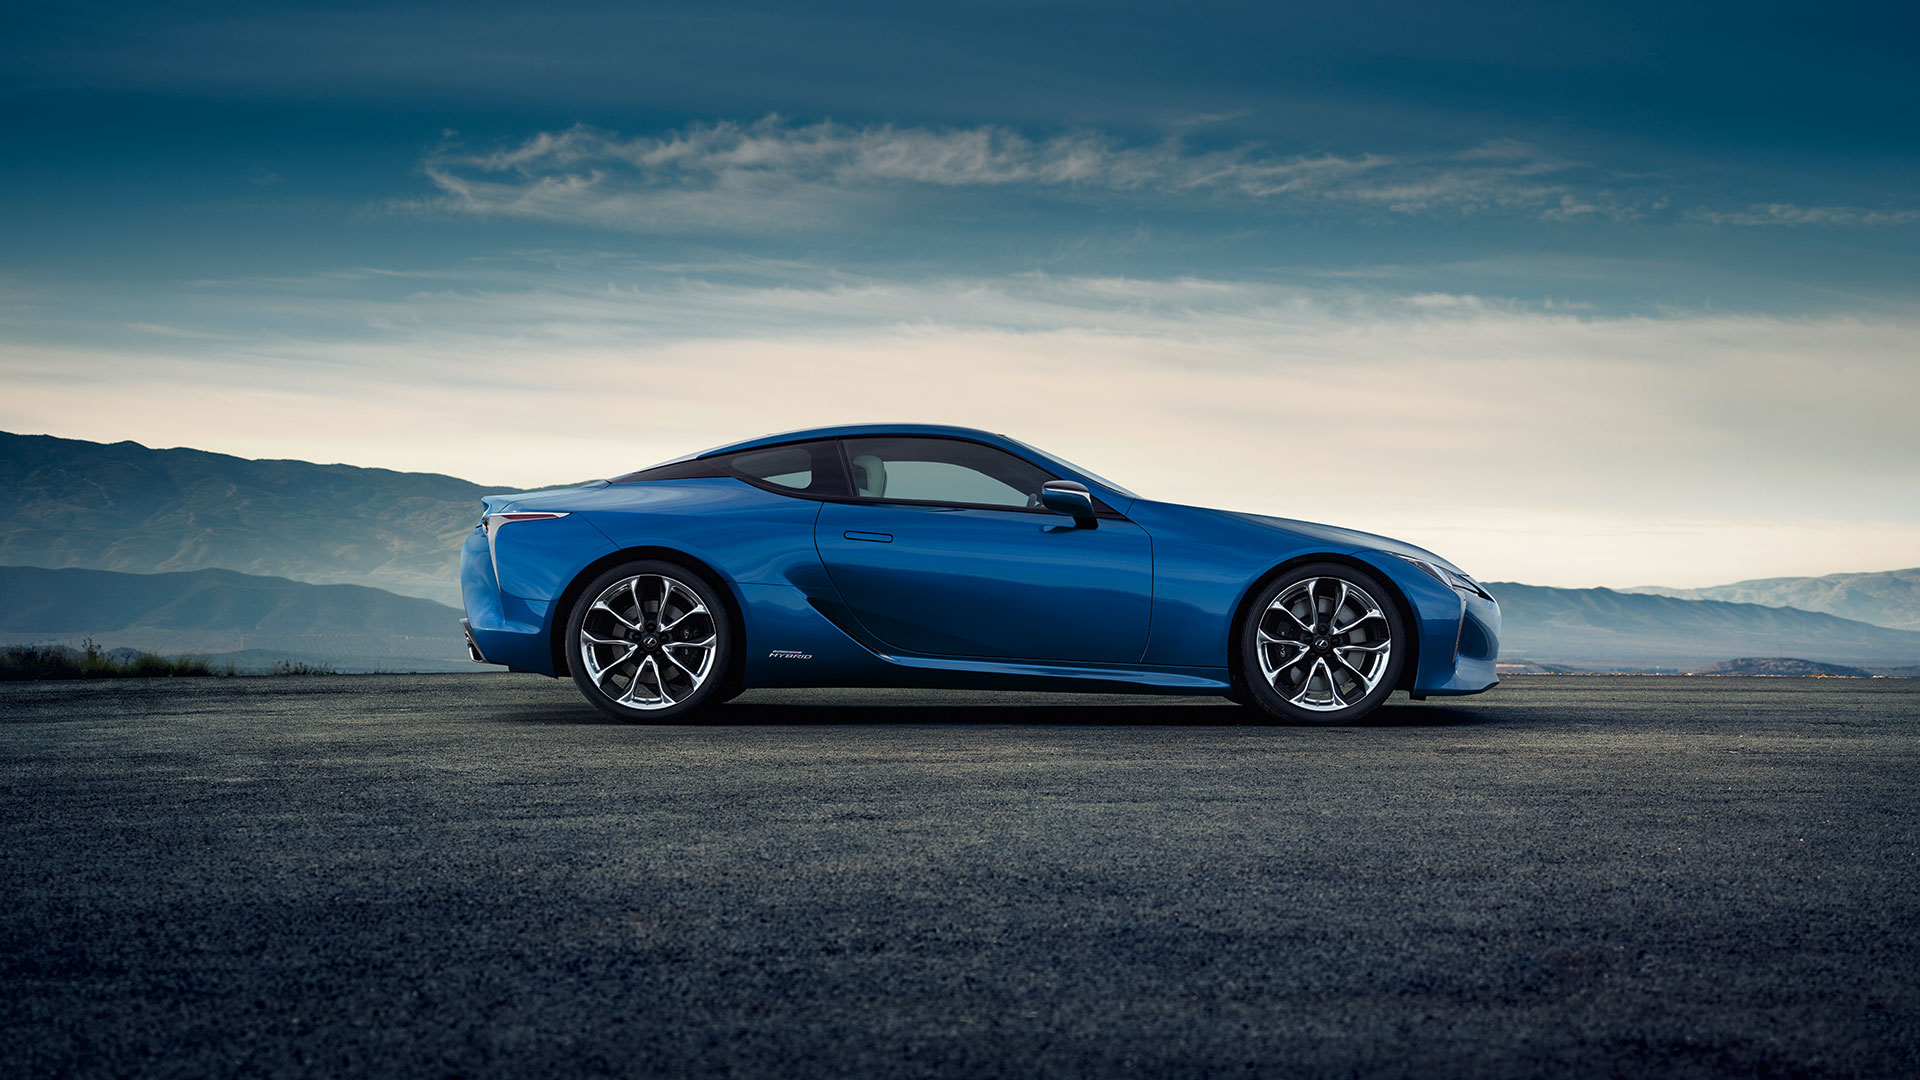 The All New Lexus Lc Structural Blue Edition Lexus Uk